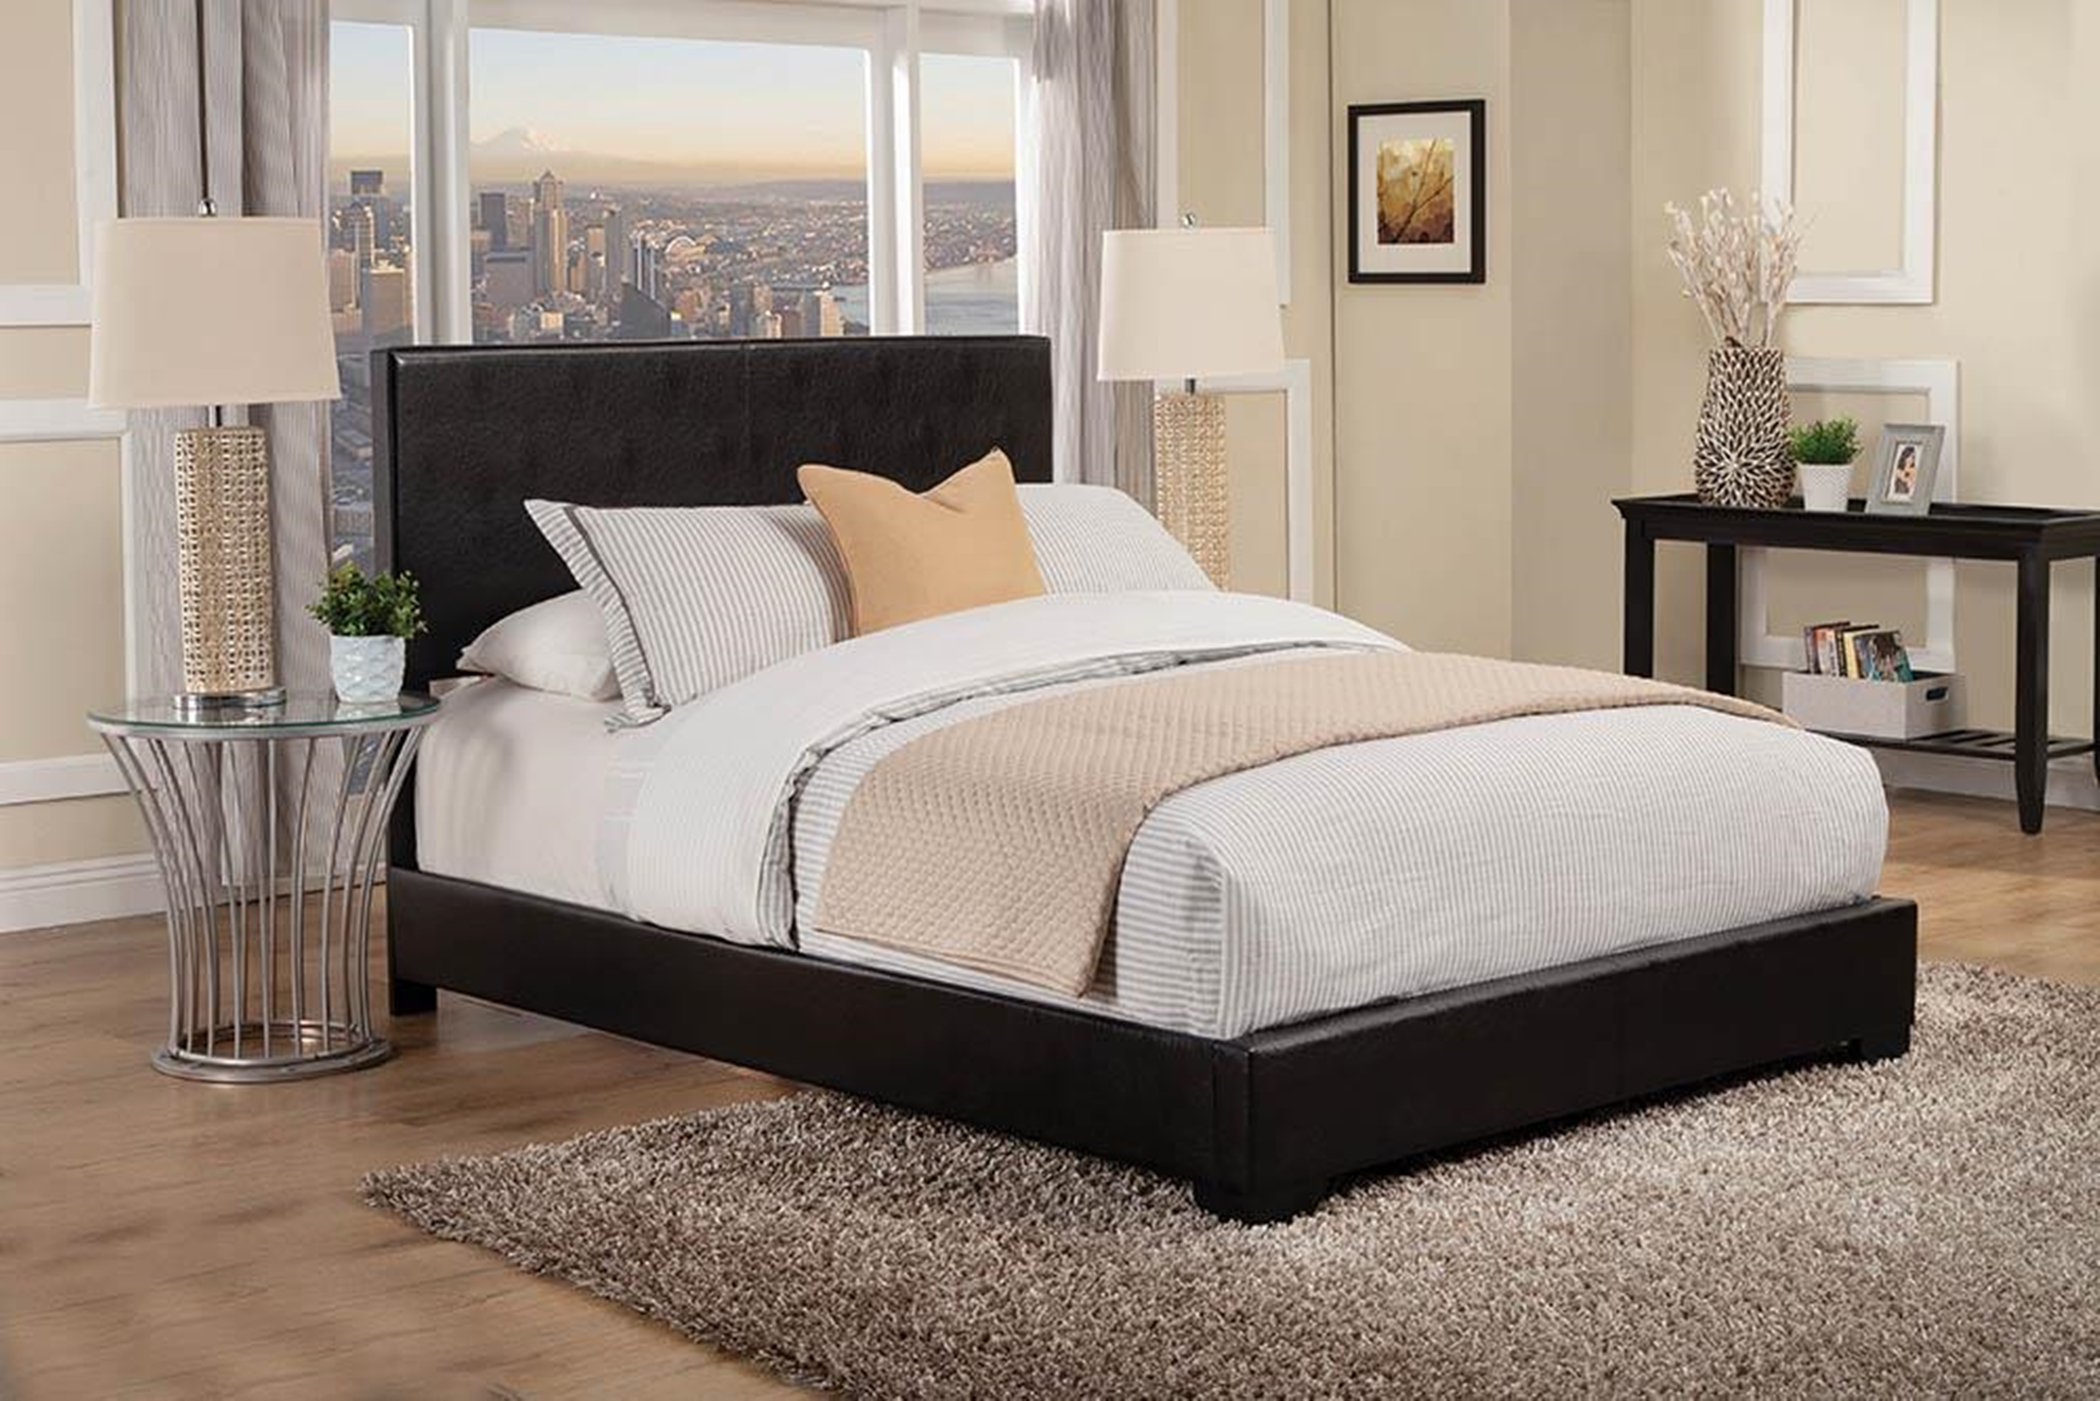 Conner Casual Black Upholstered E. King Bed